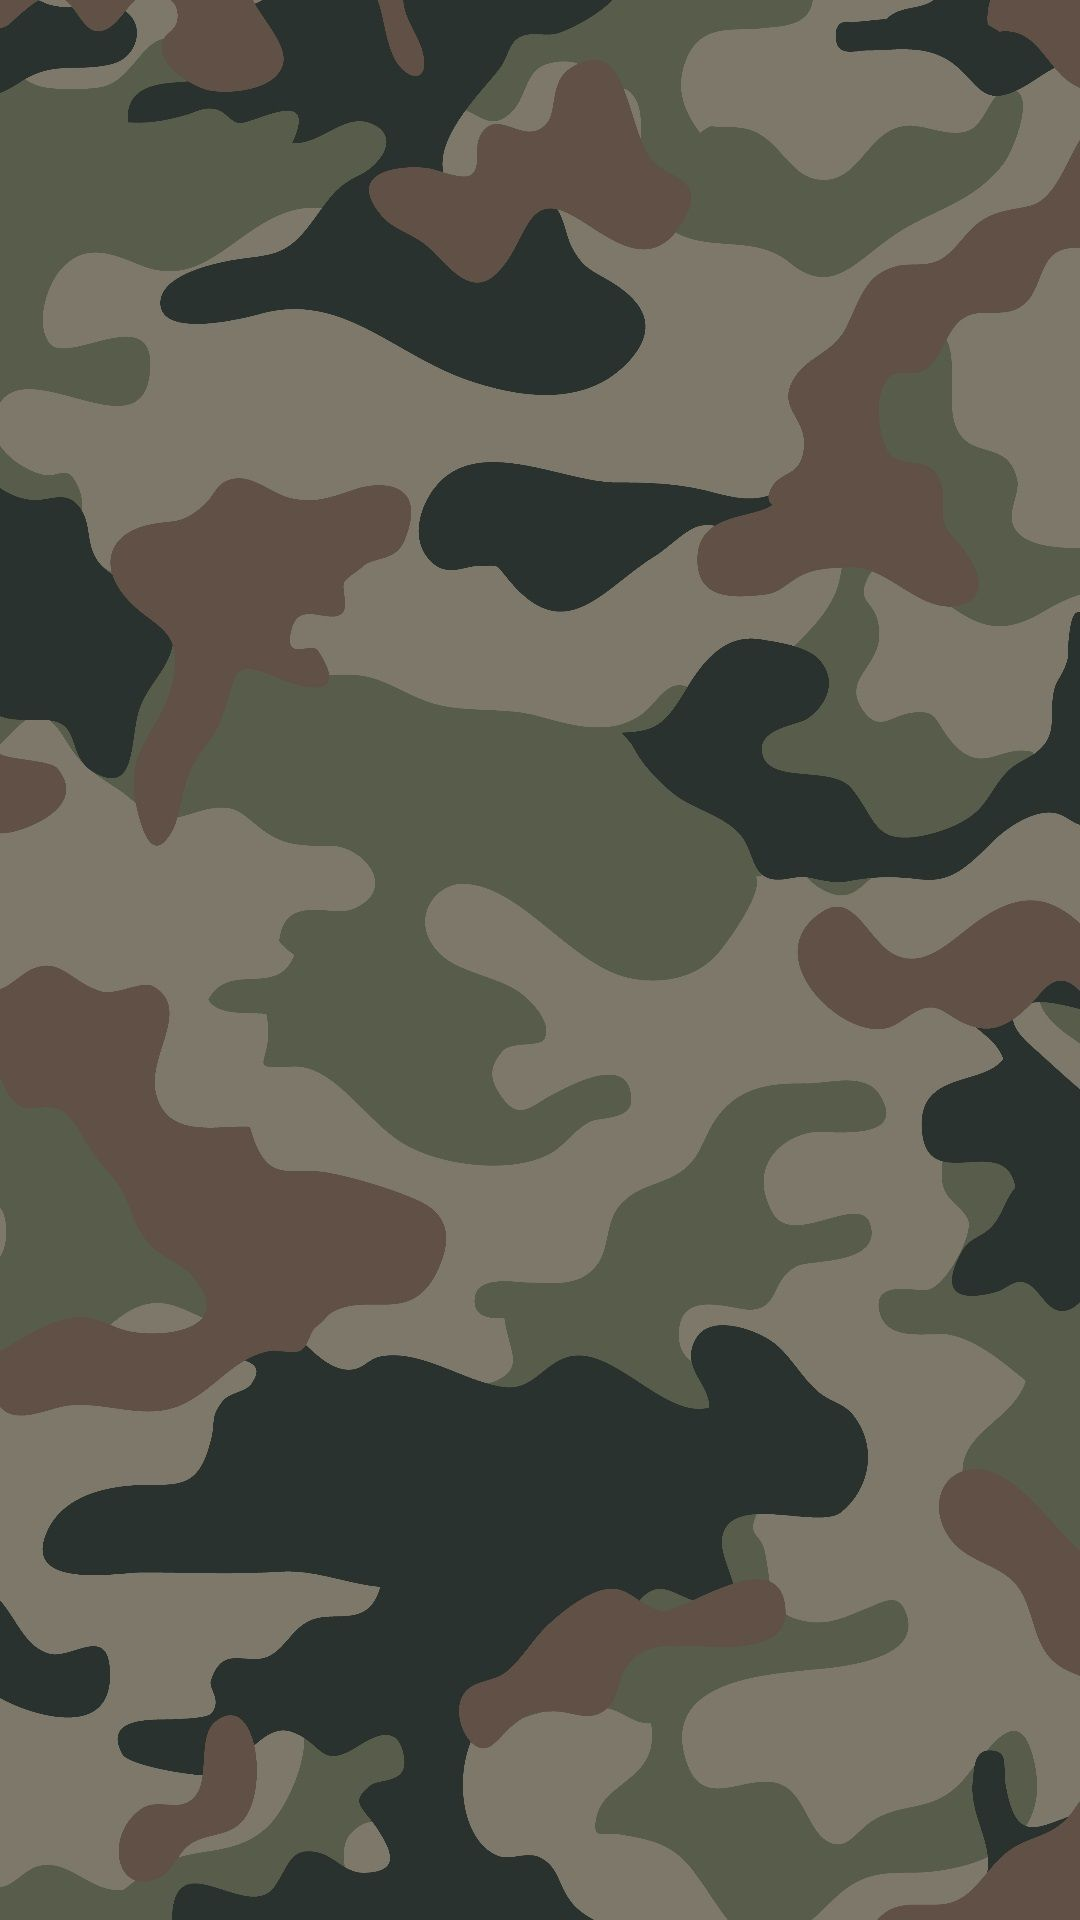 1080x1920 Camouflage wallpaper for iPhone or Android. Tags: camo, hunting ...